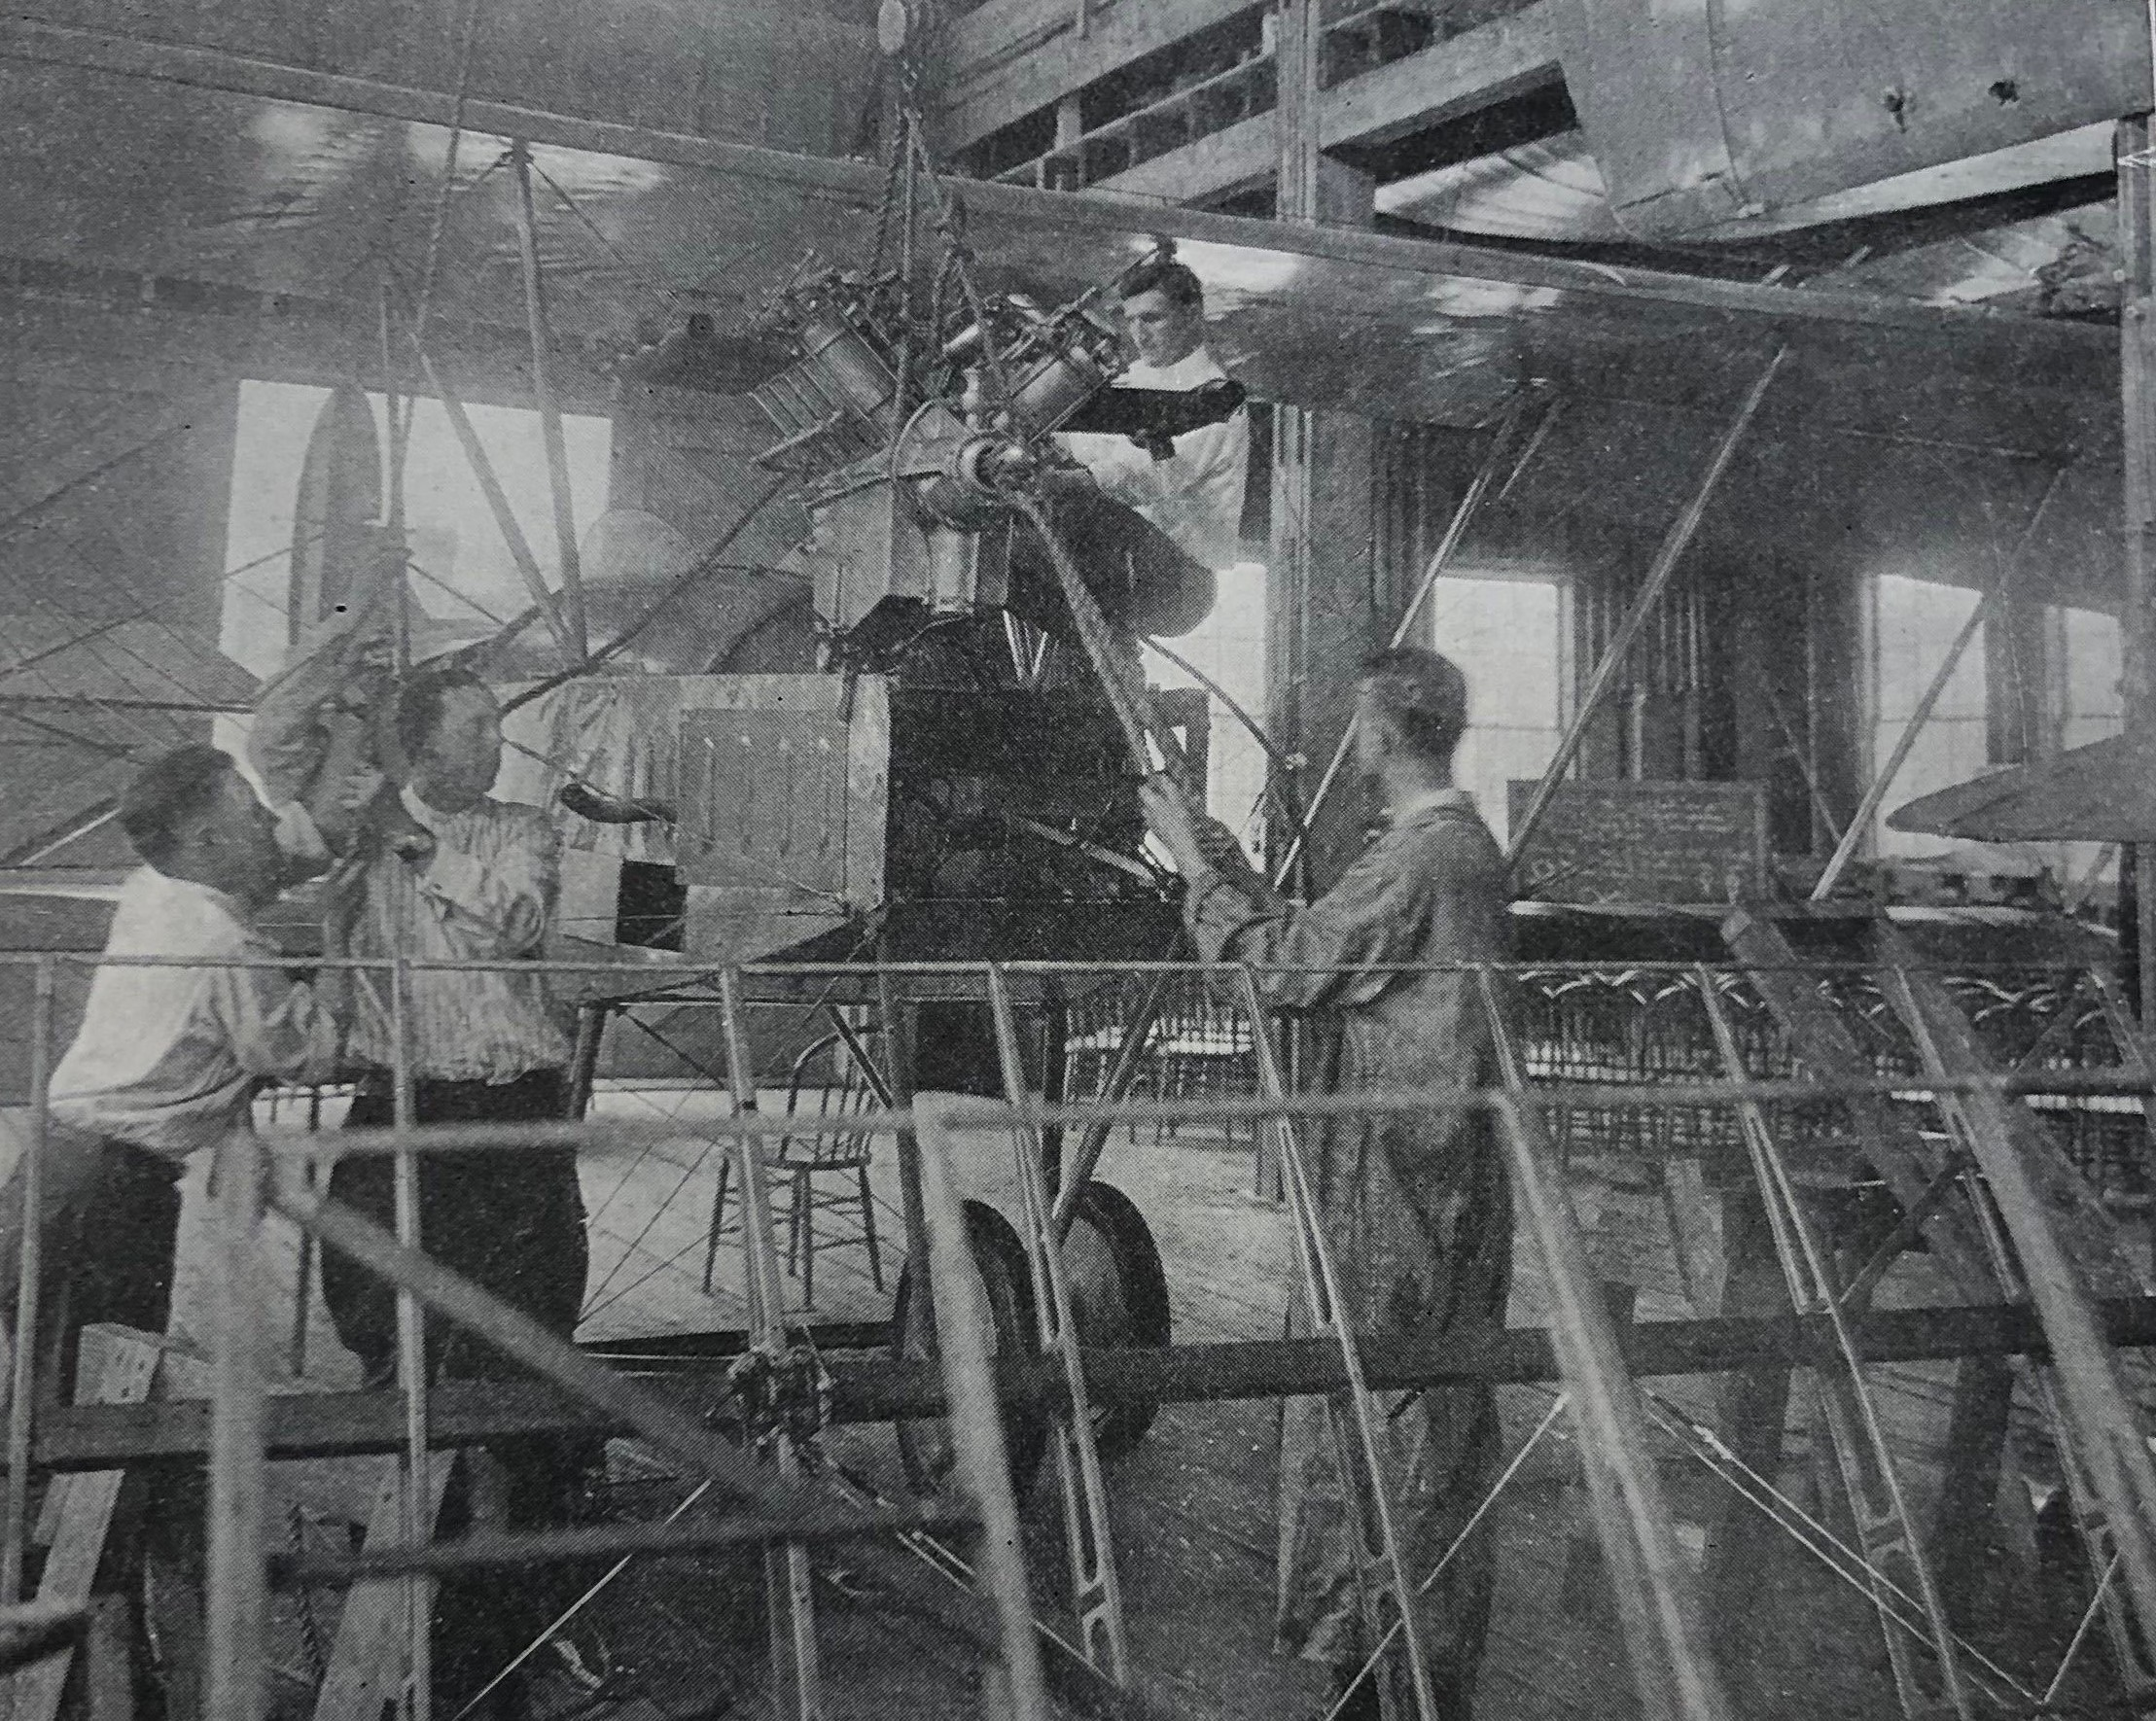 Aeronautical Engineering Students, World War I